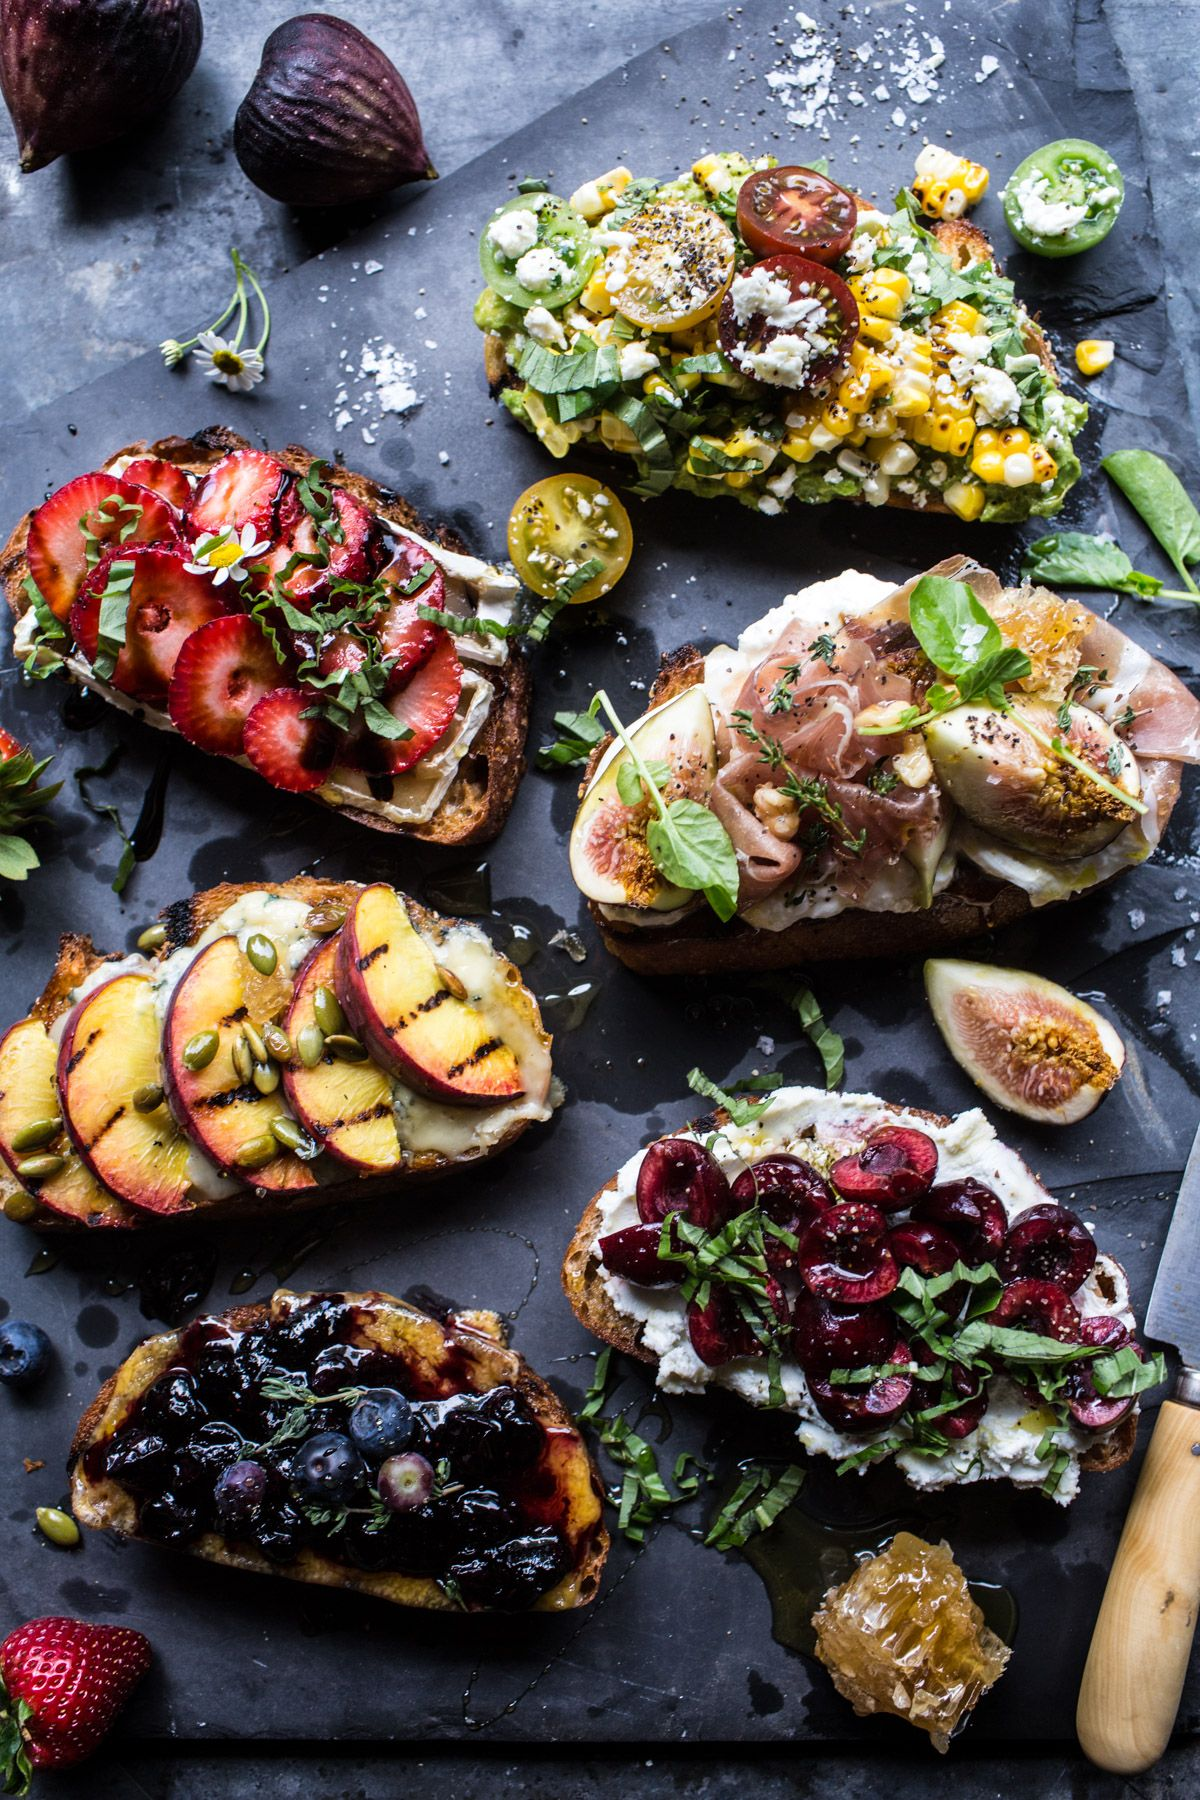 Awesome Summer Menu Ideas Dinner Party Part - 10: Pinterest